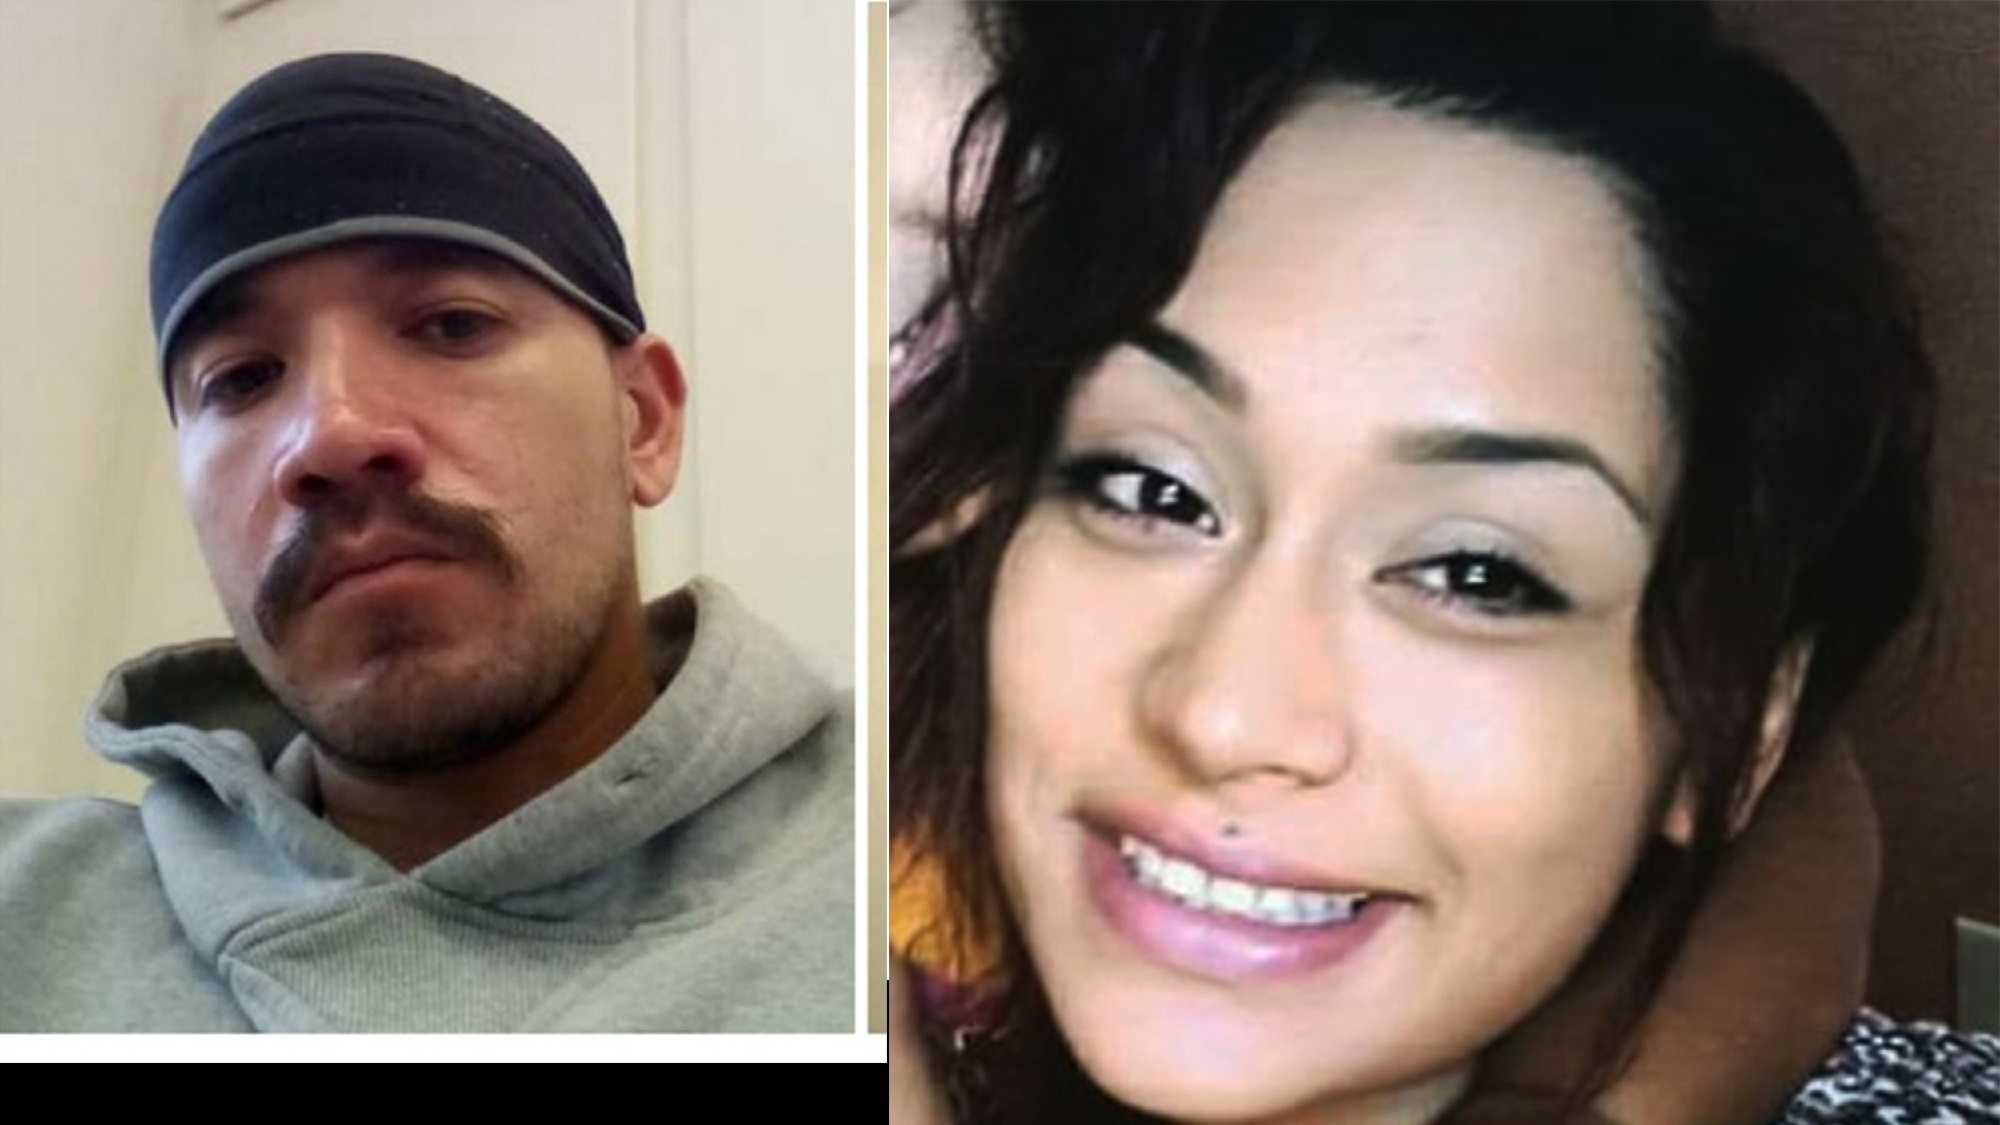 Ernesto Hernandez, left, and Abigail Gasca-Chavez, right